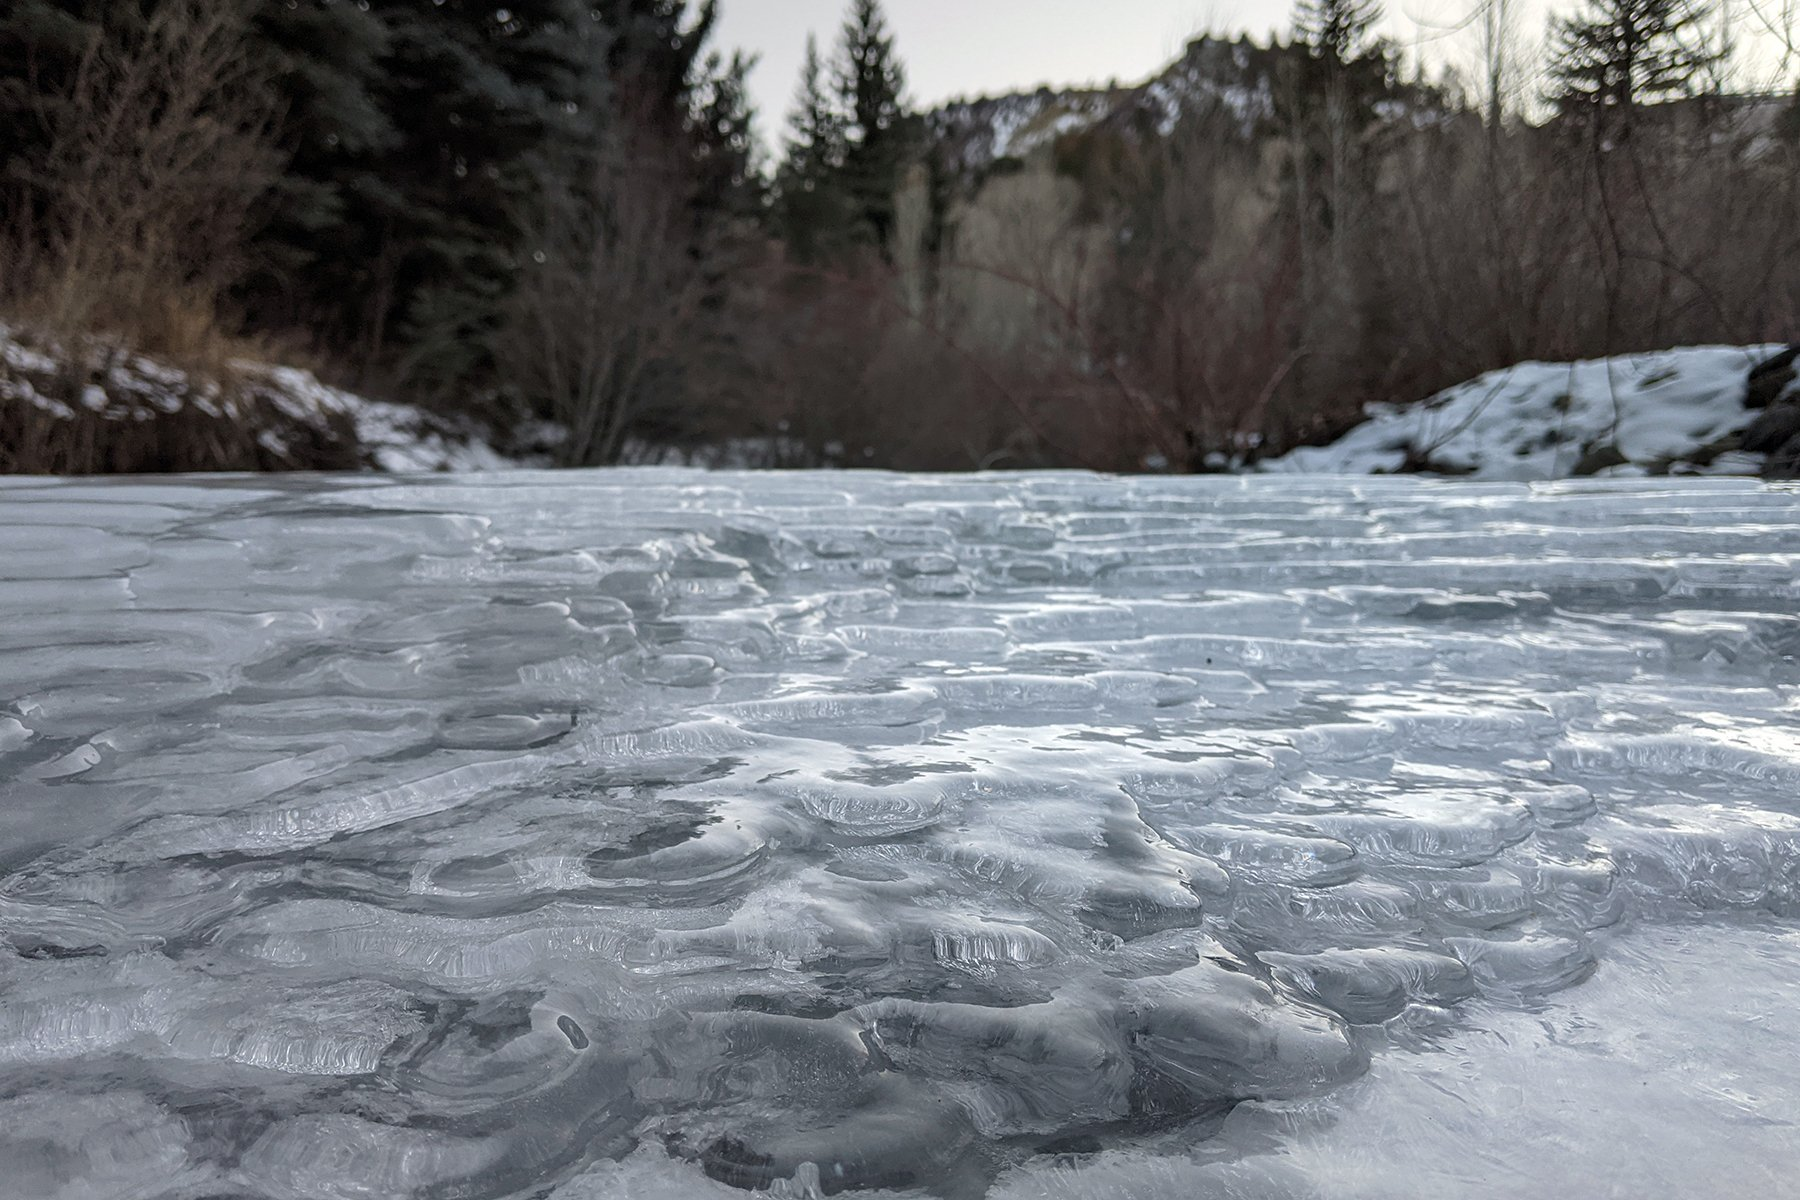 Frozen fractals While not suitable for skating, the ice covering Thompson Creek creates some lovely patterns. Photos by Shannon O'Gara Standiford